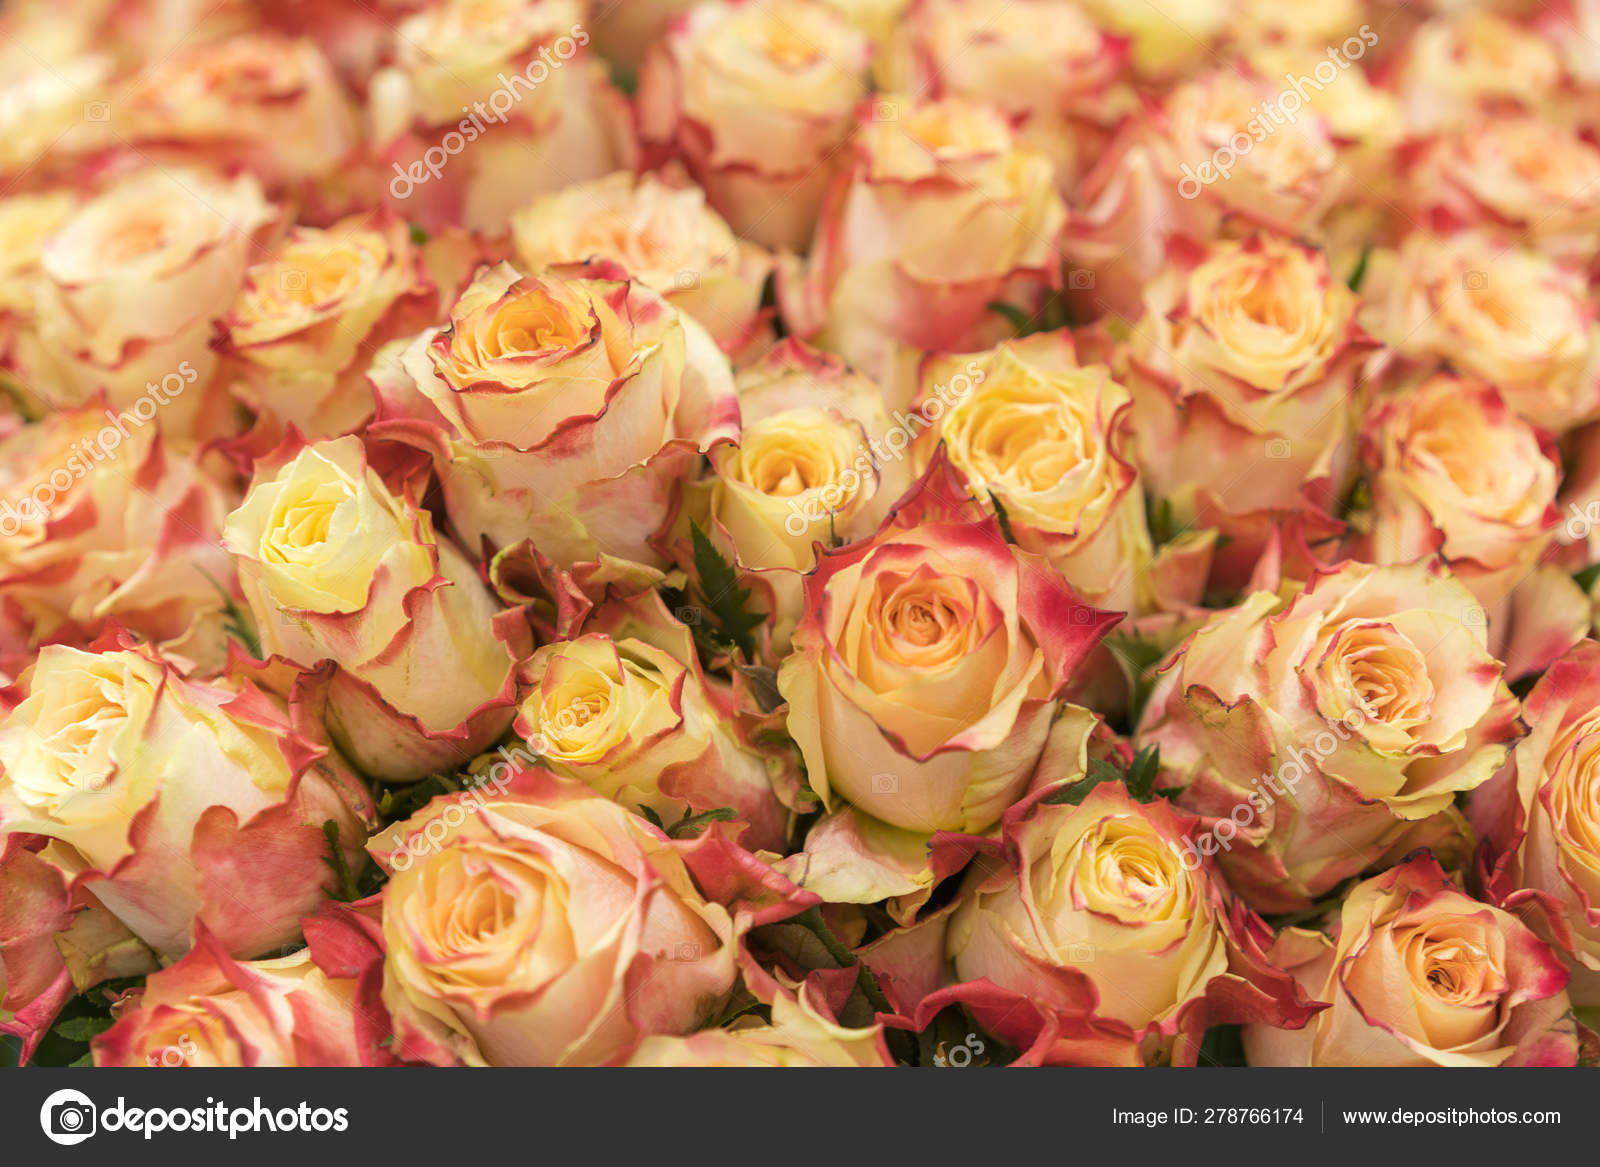 background of pink orange and peach roses natural background of fresh roses soft focus stock photo c colt kiev mail ru 278766174 https depositphotos com 278766174 stock photo background of pink orange and html